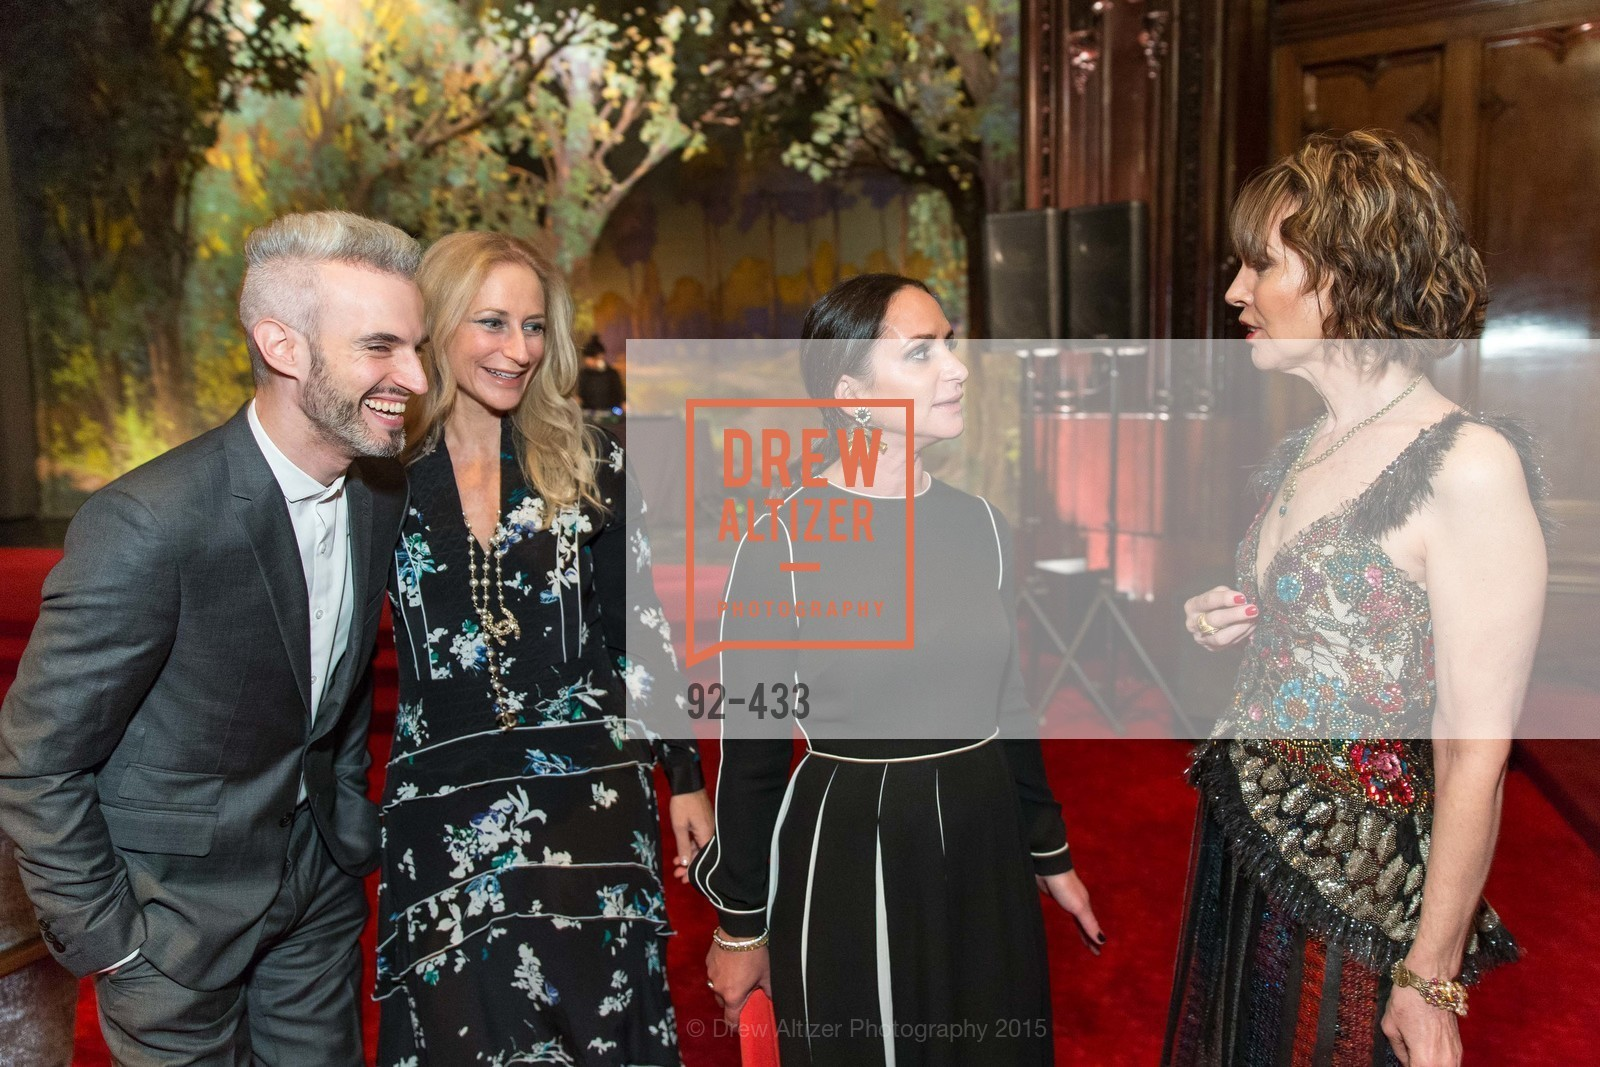 Frederic Aranda, Joni Binder, Courtney Dallaire, Christine Suppes, SFMOMA Contemporary Vision Award, Regency Ballroom. 1300 Van Ness, November 3rd, 2015,Drew Altizer, Drew Altizer Photography, full-service event agency, private events, San Francisco photographer, photographer California